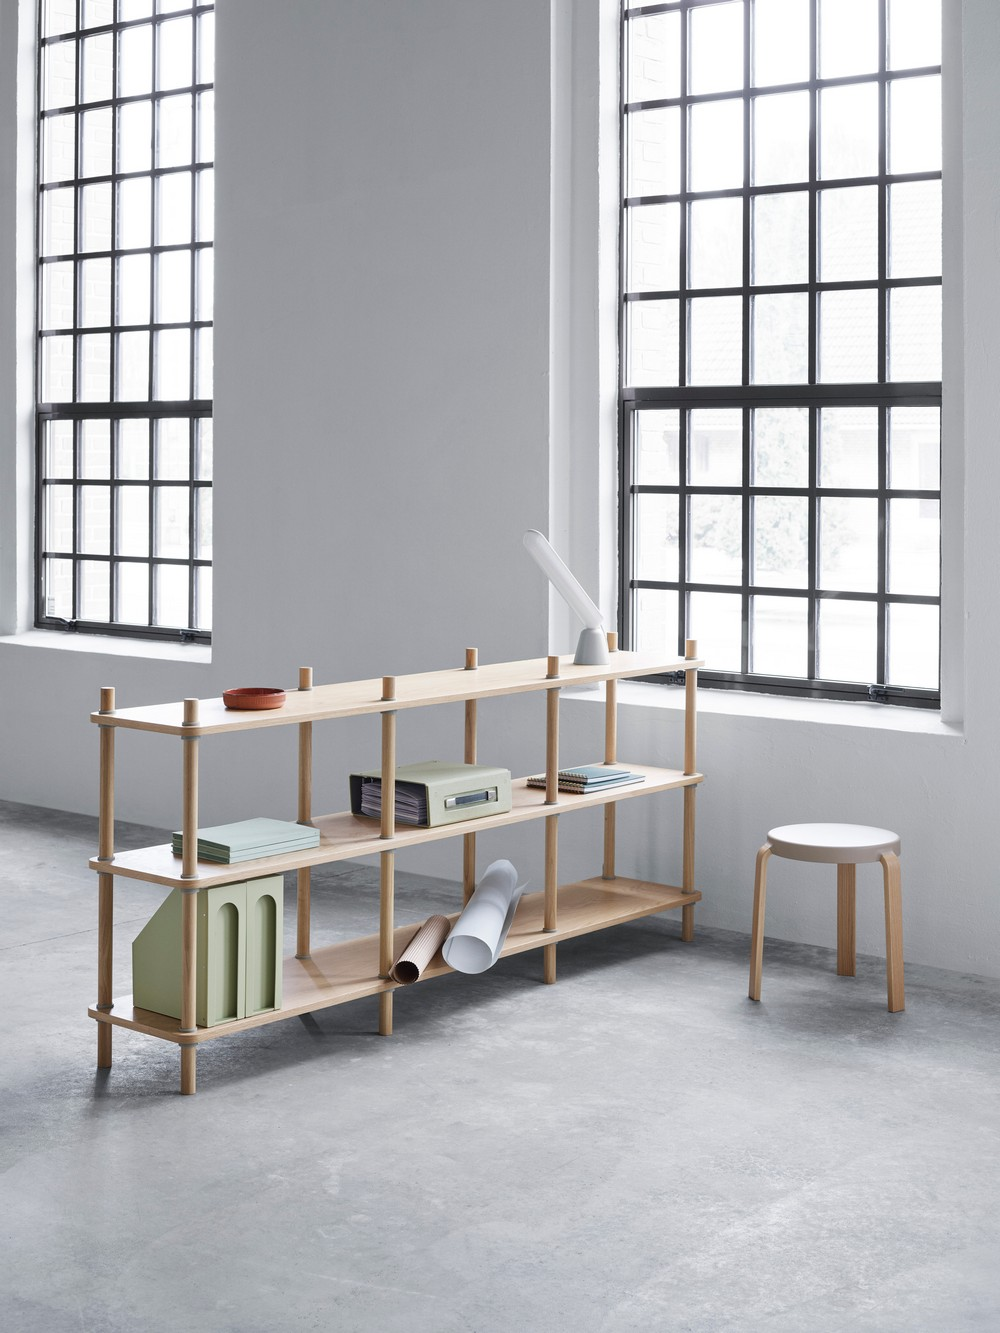 Norman Copenhagen Newest Bookcase Design Is Stunning! norman copenhagen Norman Copenhagen Newest Bookcase Design Is Stunning! Norman Copenhagen Newest Bookcase Design Is Stunning 5